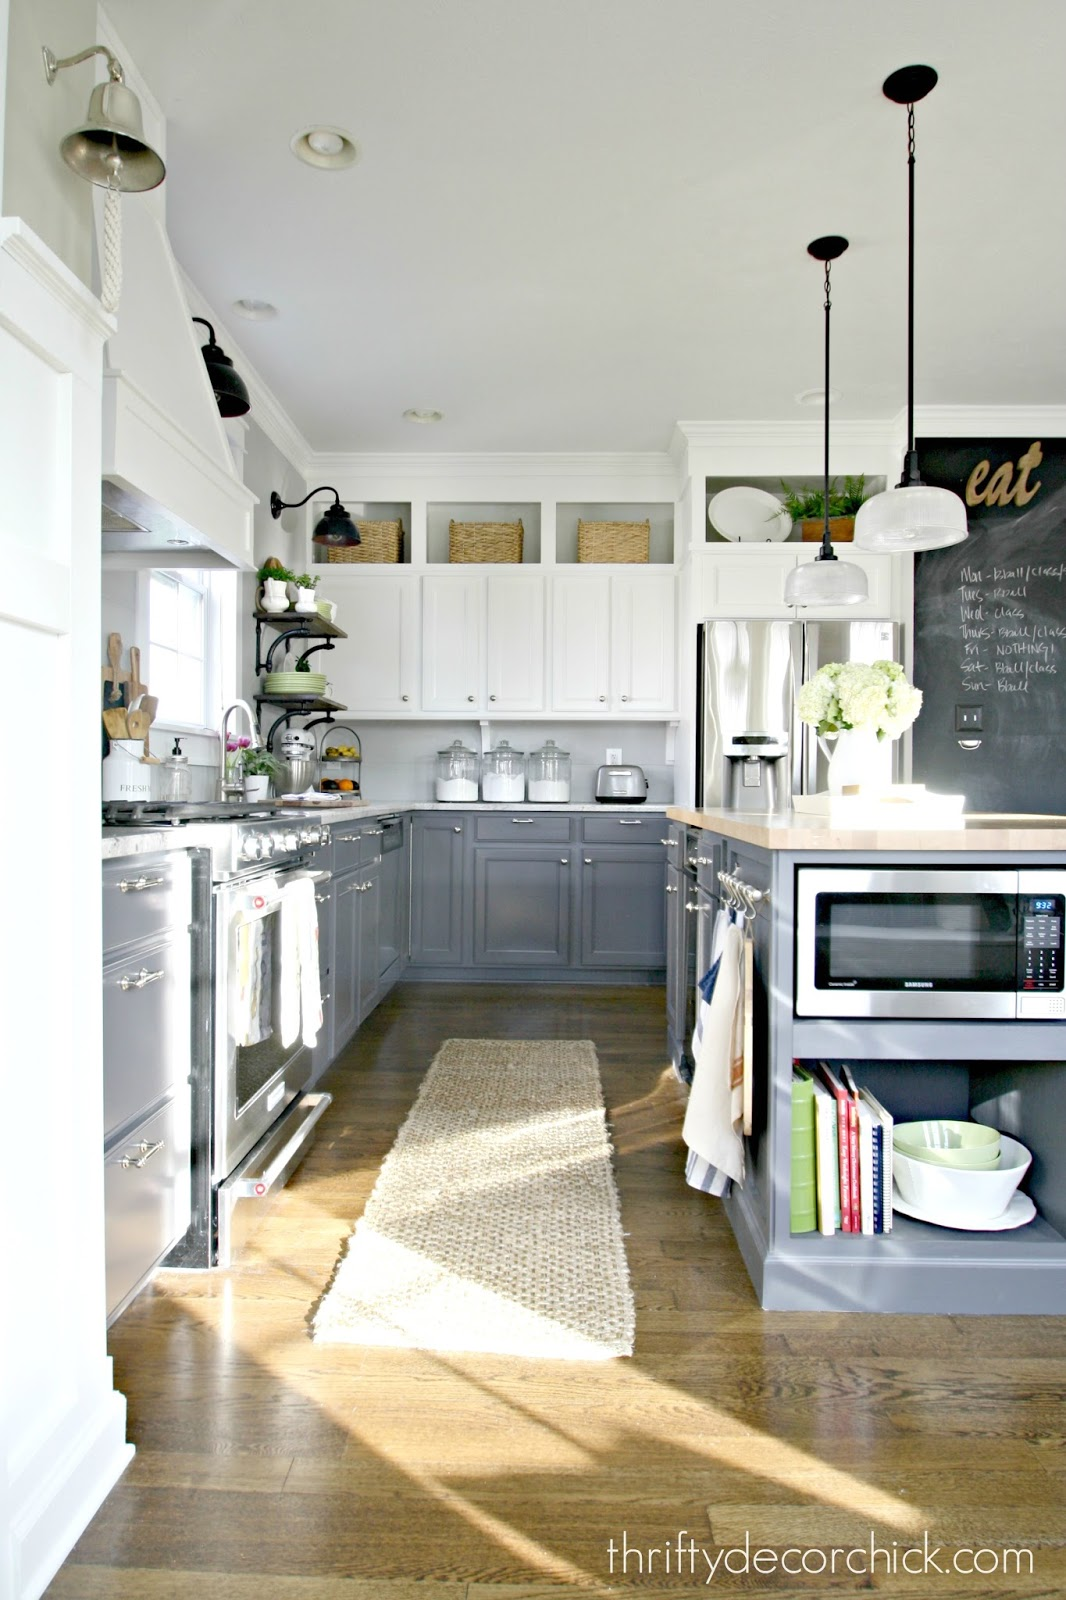 Kitchen Diys Details And Sources From Thrifty Decor Chick